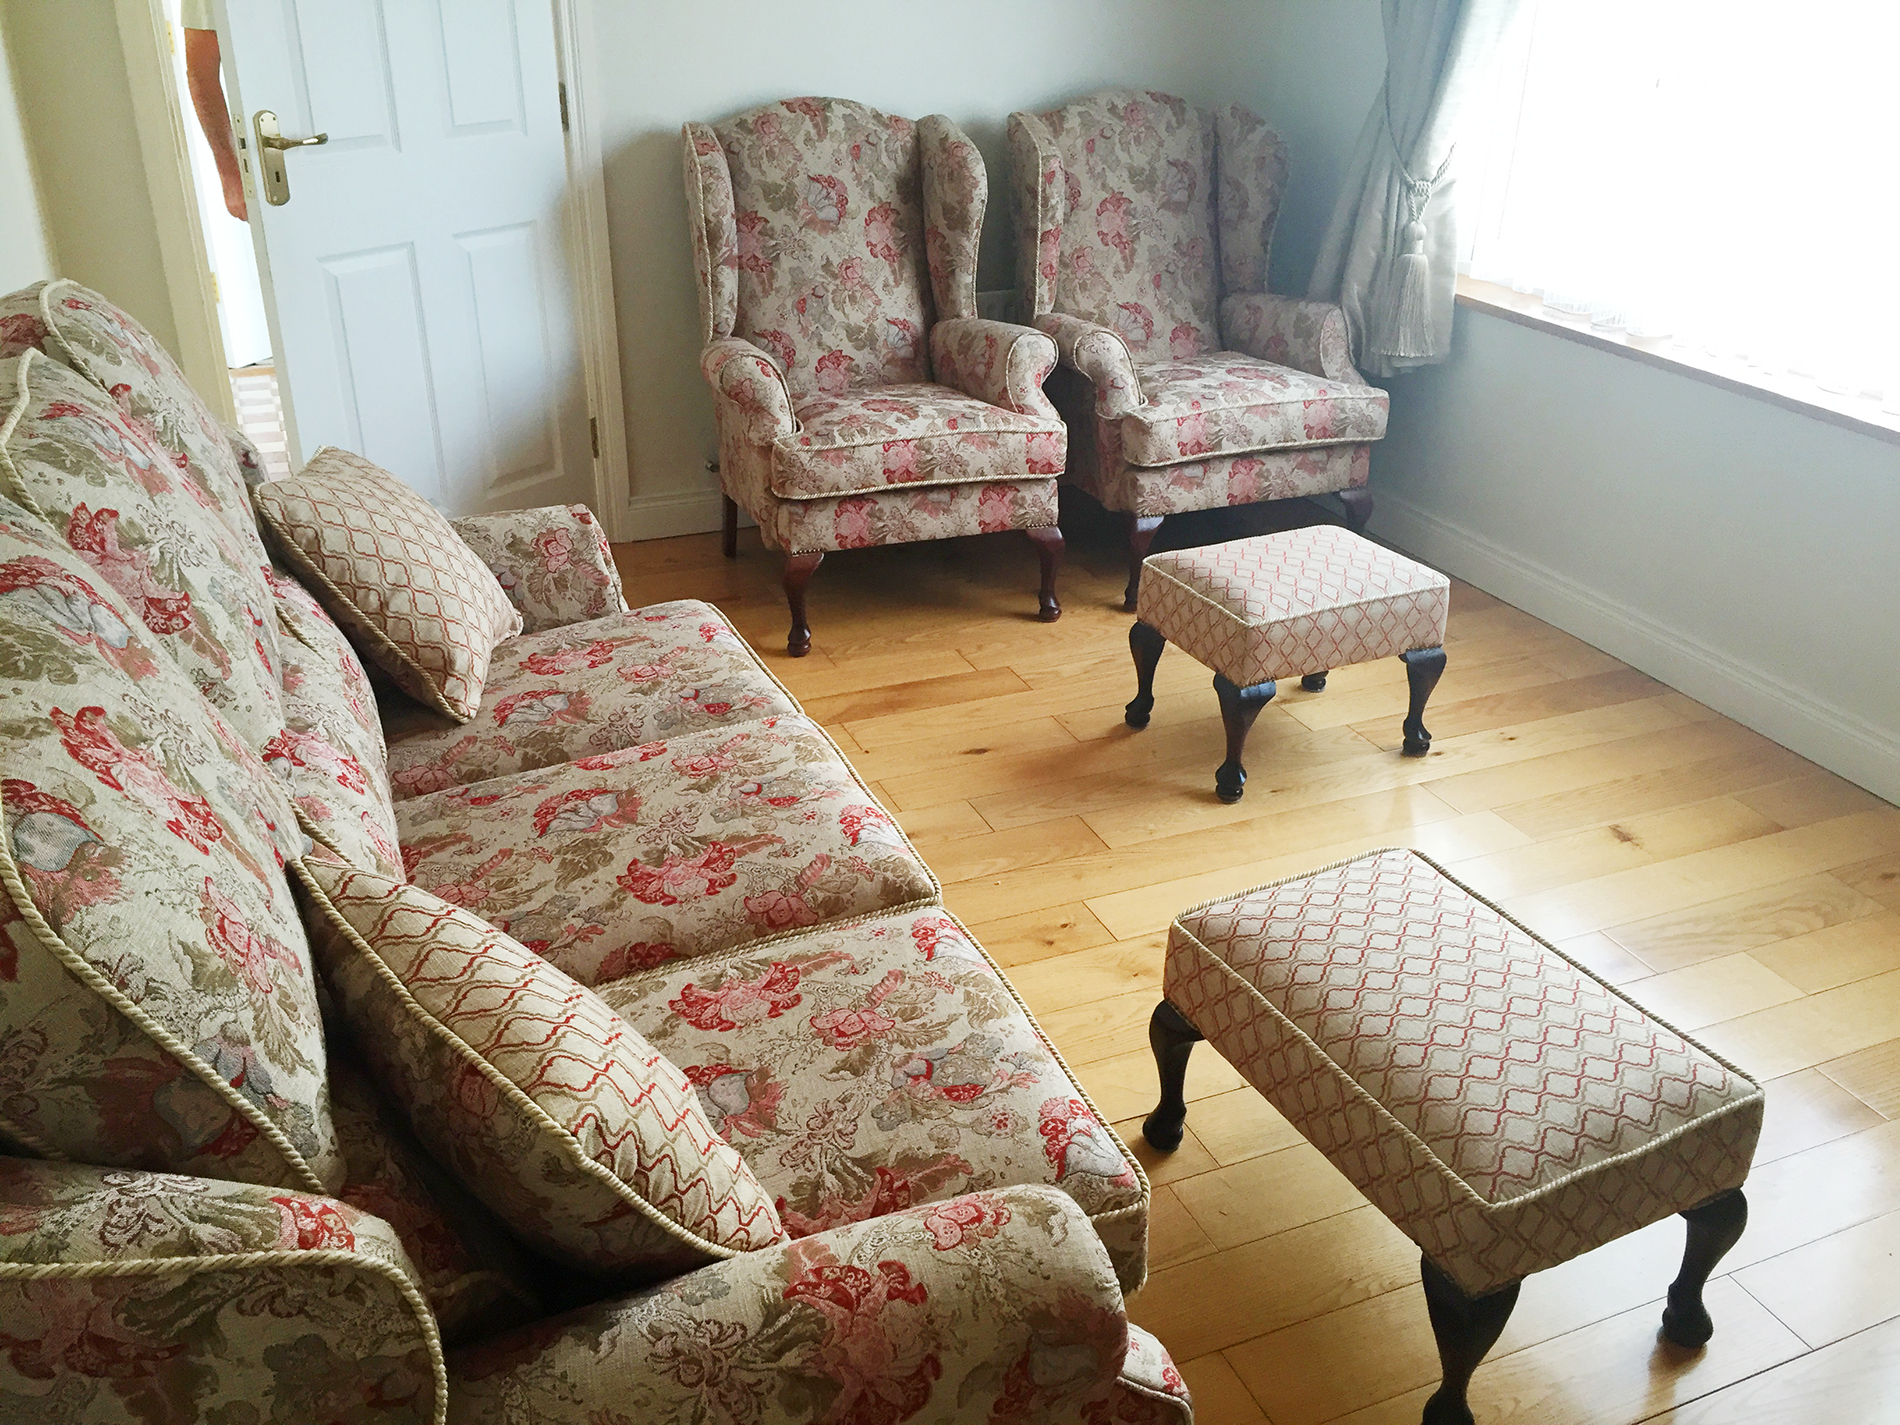 Sofa, Footstool & Queen anne chairs